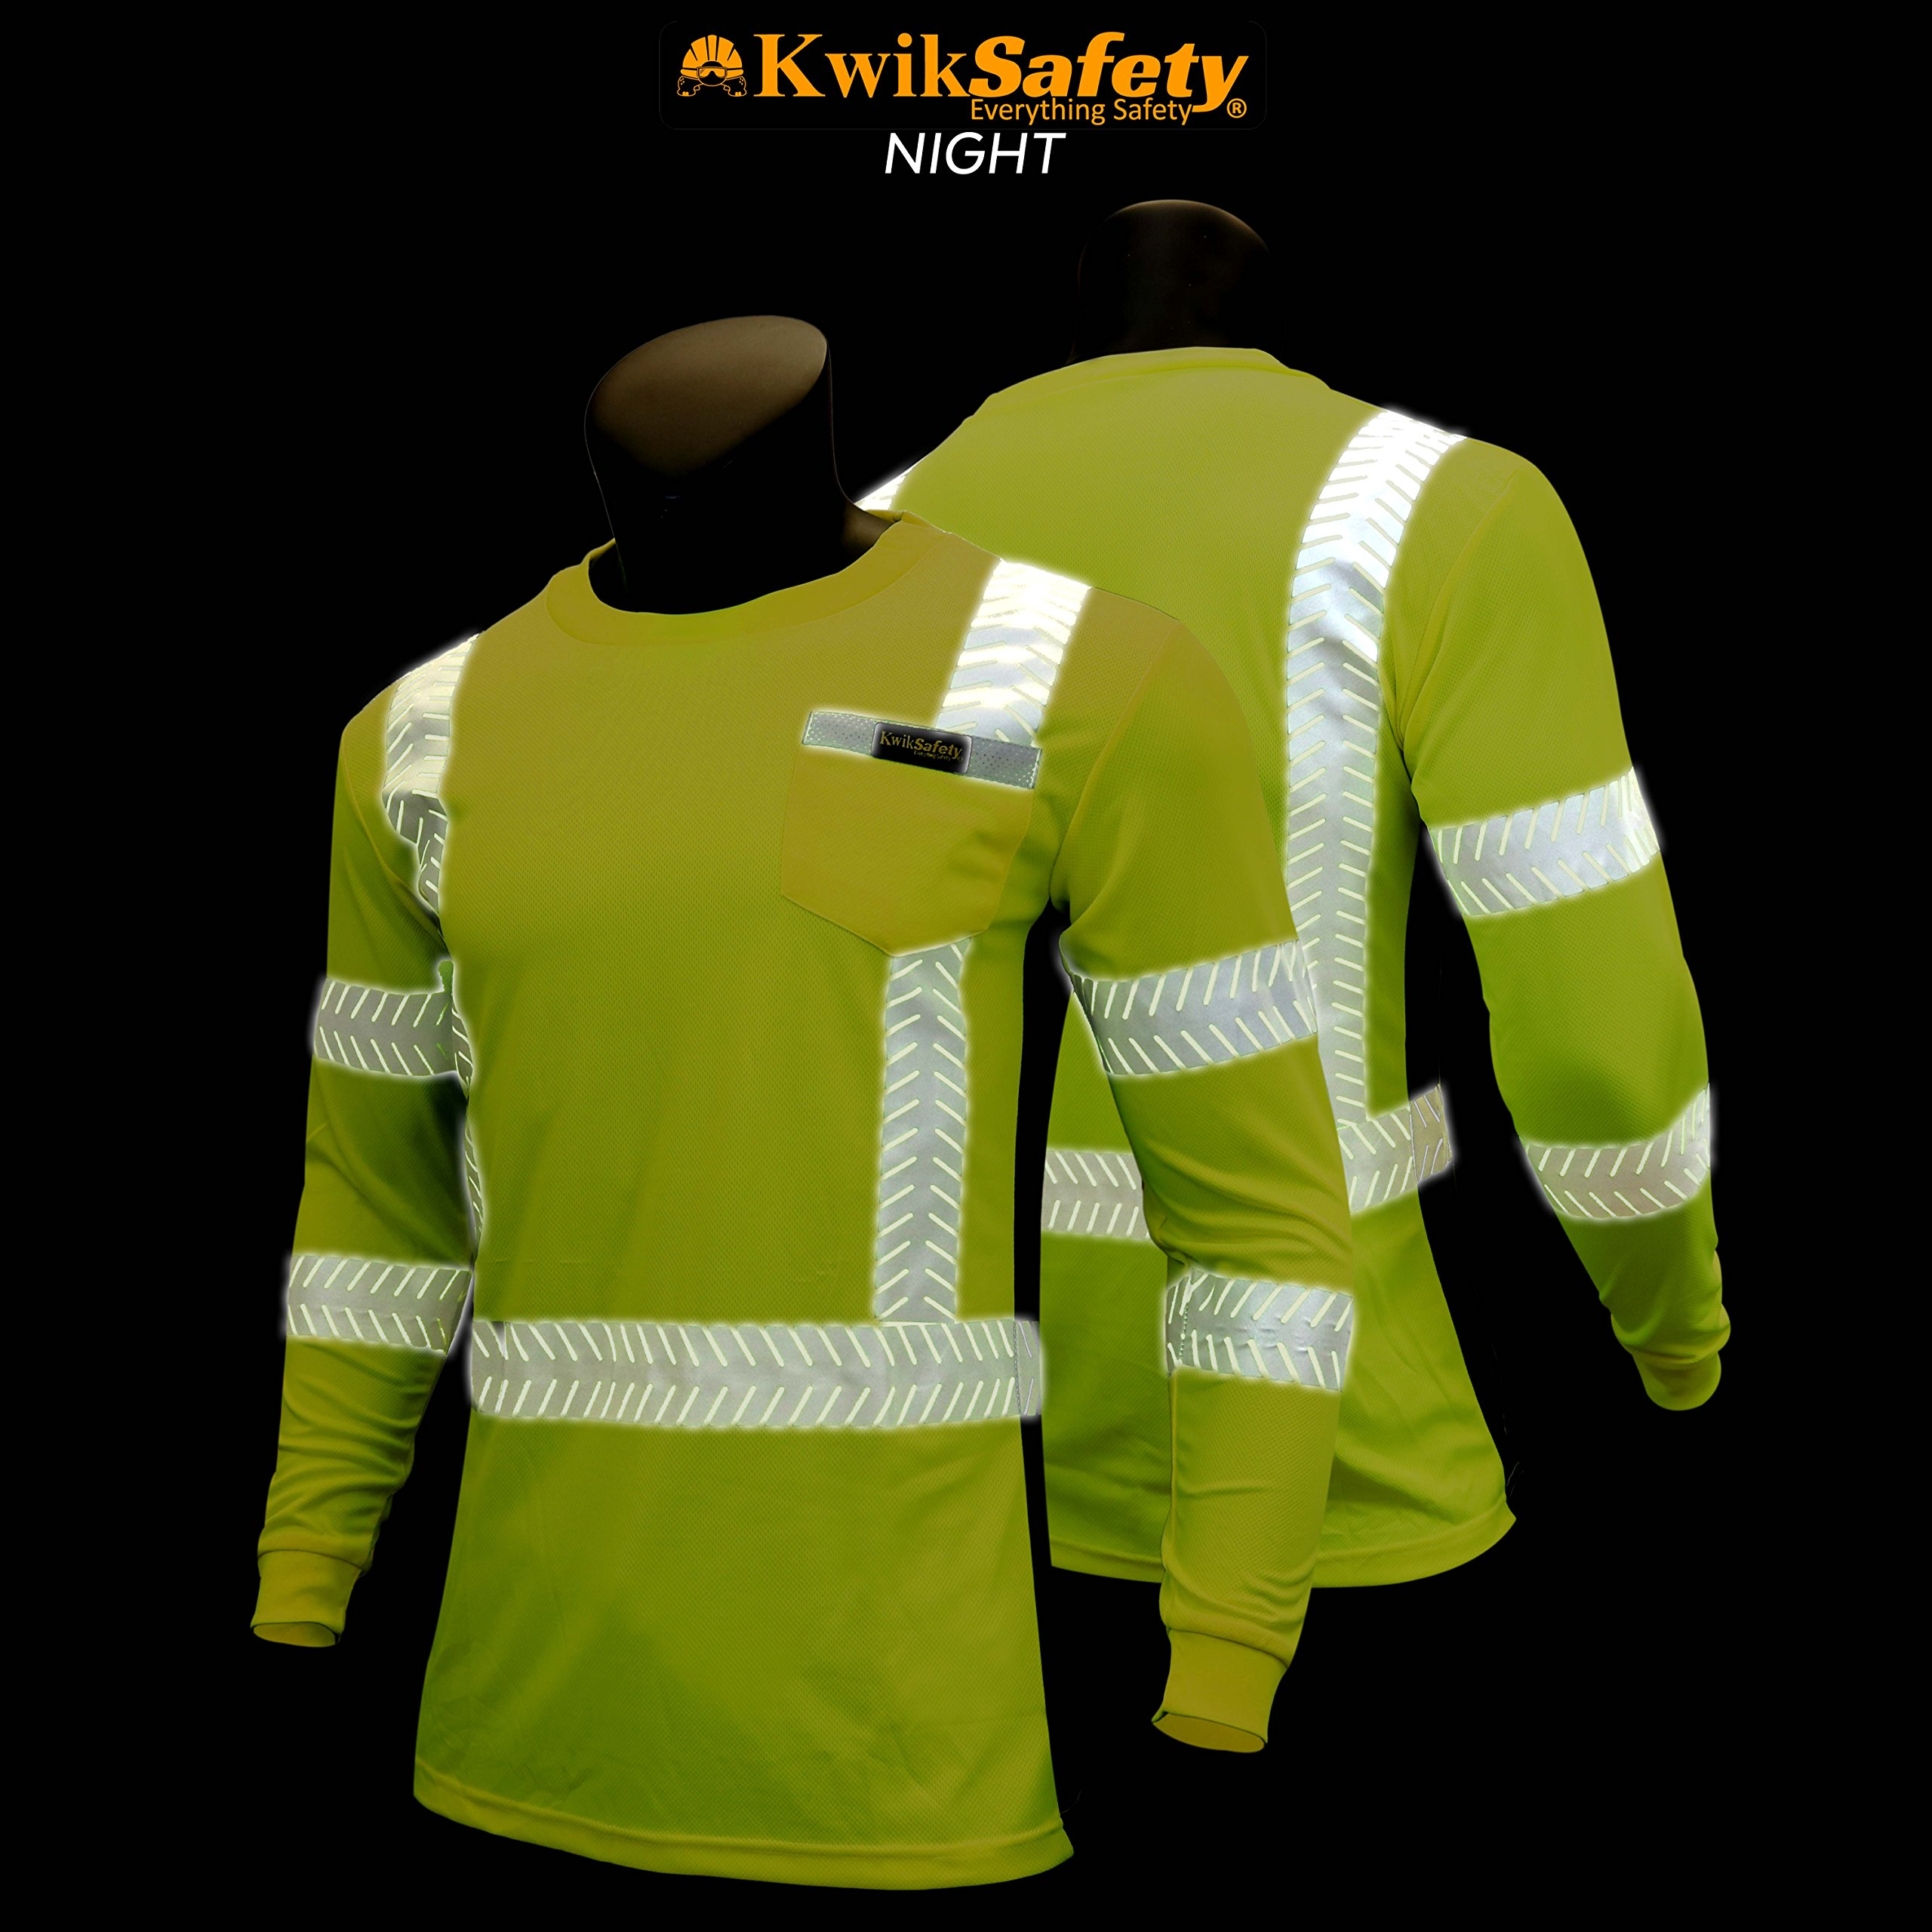 KwikSafety (Charlotte, NC) RENAISSANCE MAN (with POCKET) Class 3 ANSI High Visibility Safety Shirt Fishbone Reflective Tape Construction Security Hi Vis Clothing Men Long Sleeve Yellow Black XL by KwikSafety (Image #4)